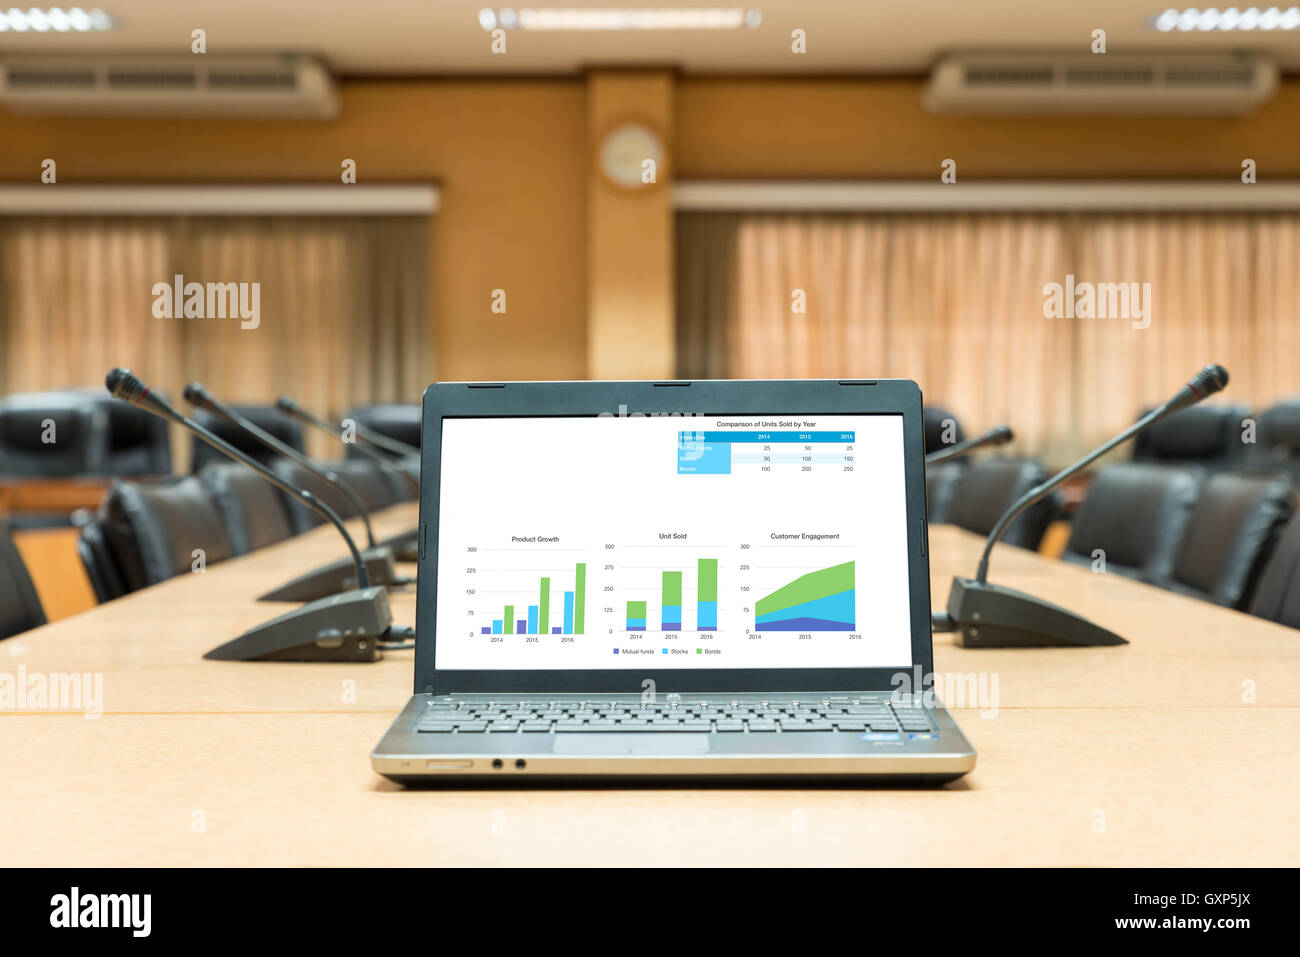 Laptop In Front Of Business Meeting Room Showing Graph Showing Stock